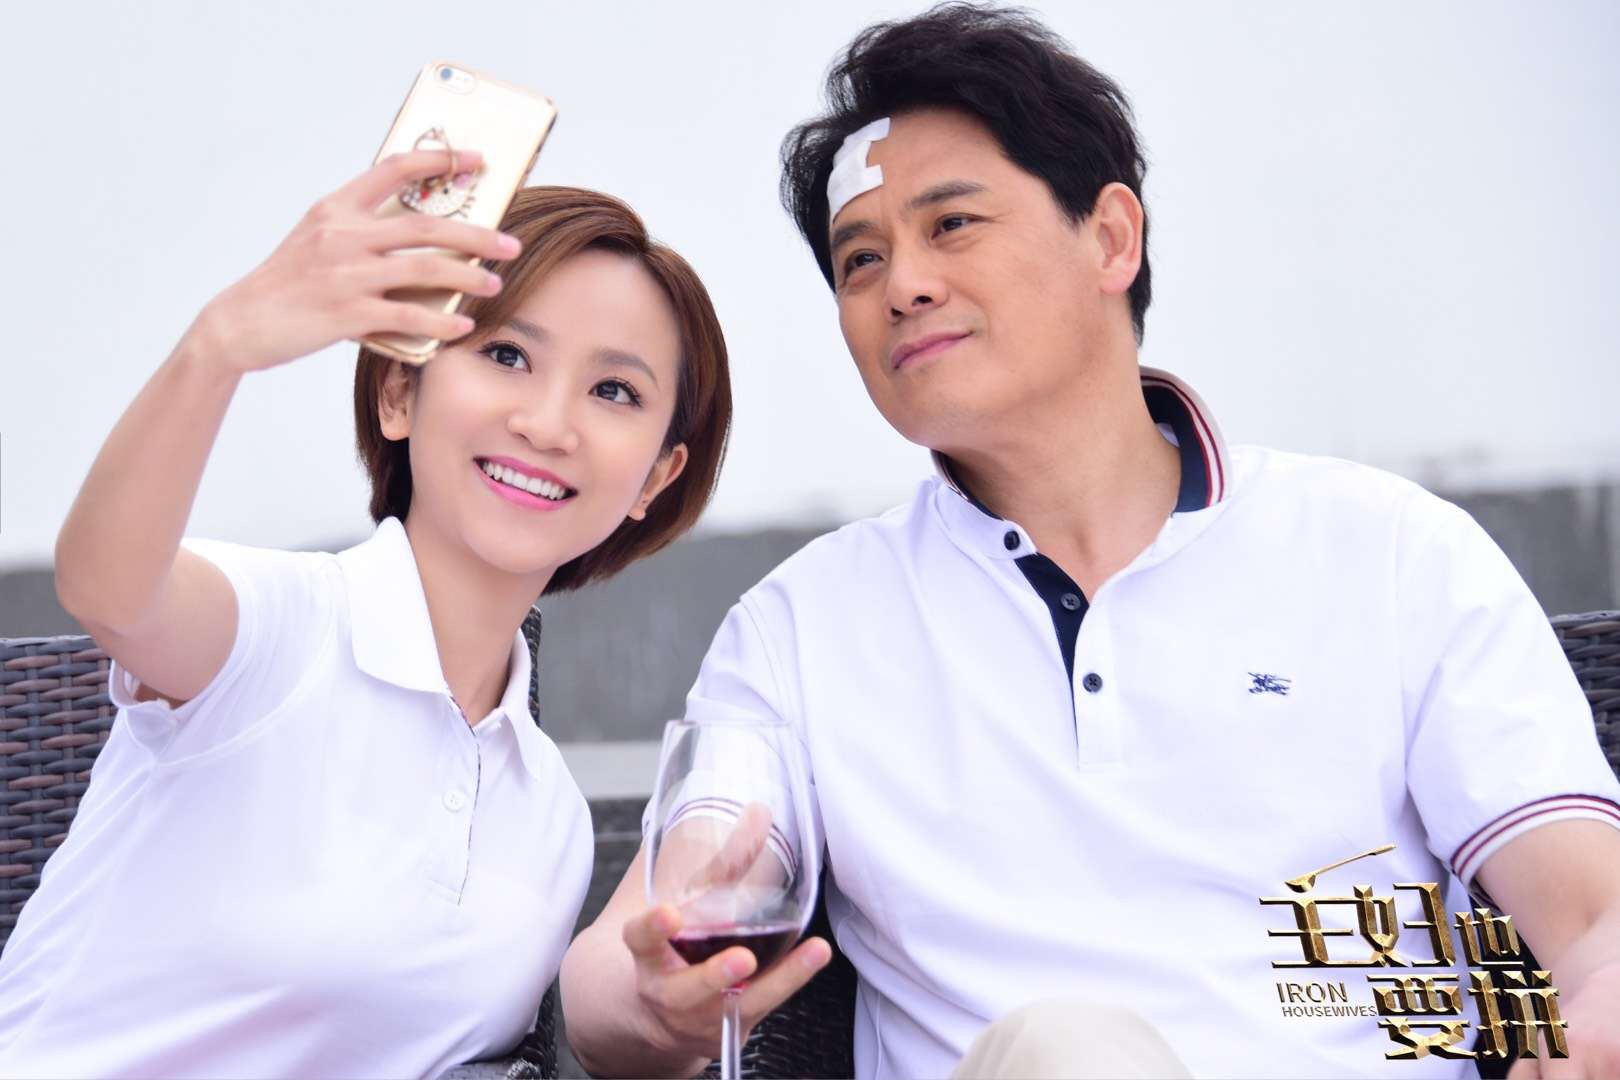 huiqing xie 《 housewife also fight 》正在热播 彰显时代新女性魅力